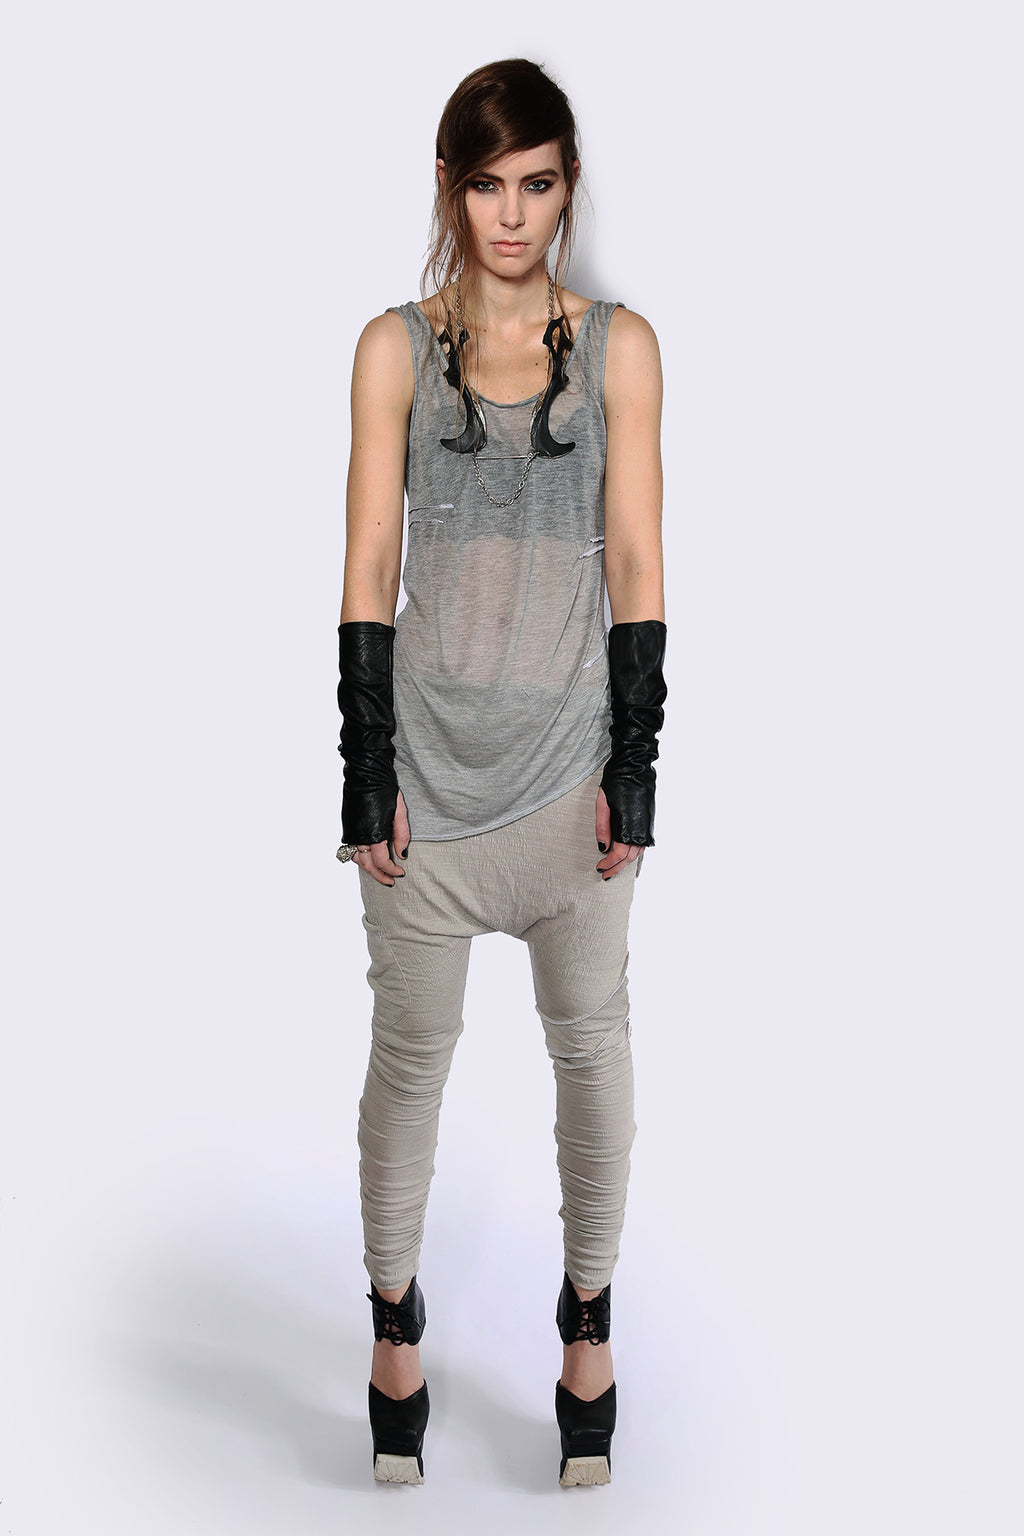 Weightless Grey A-Symmetrical Singlet Shirts + tops Ethical Sustainable Vegan Organic Australian fashion womens clothes